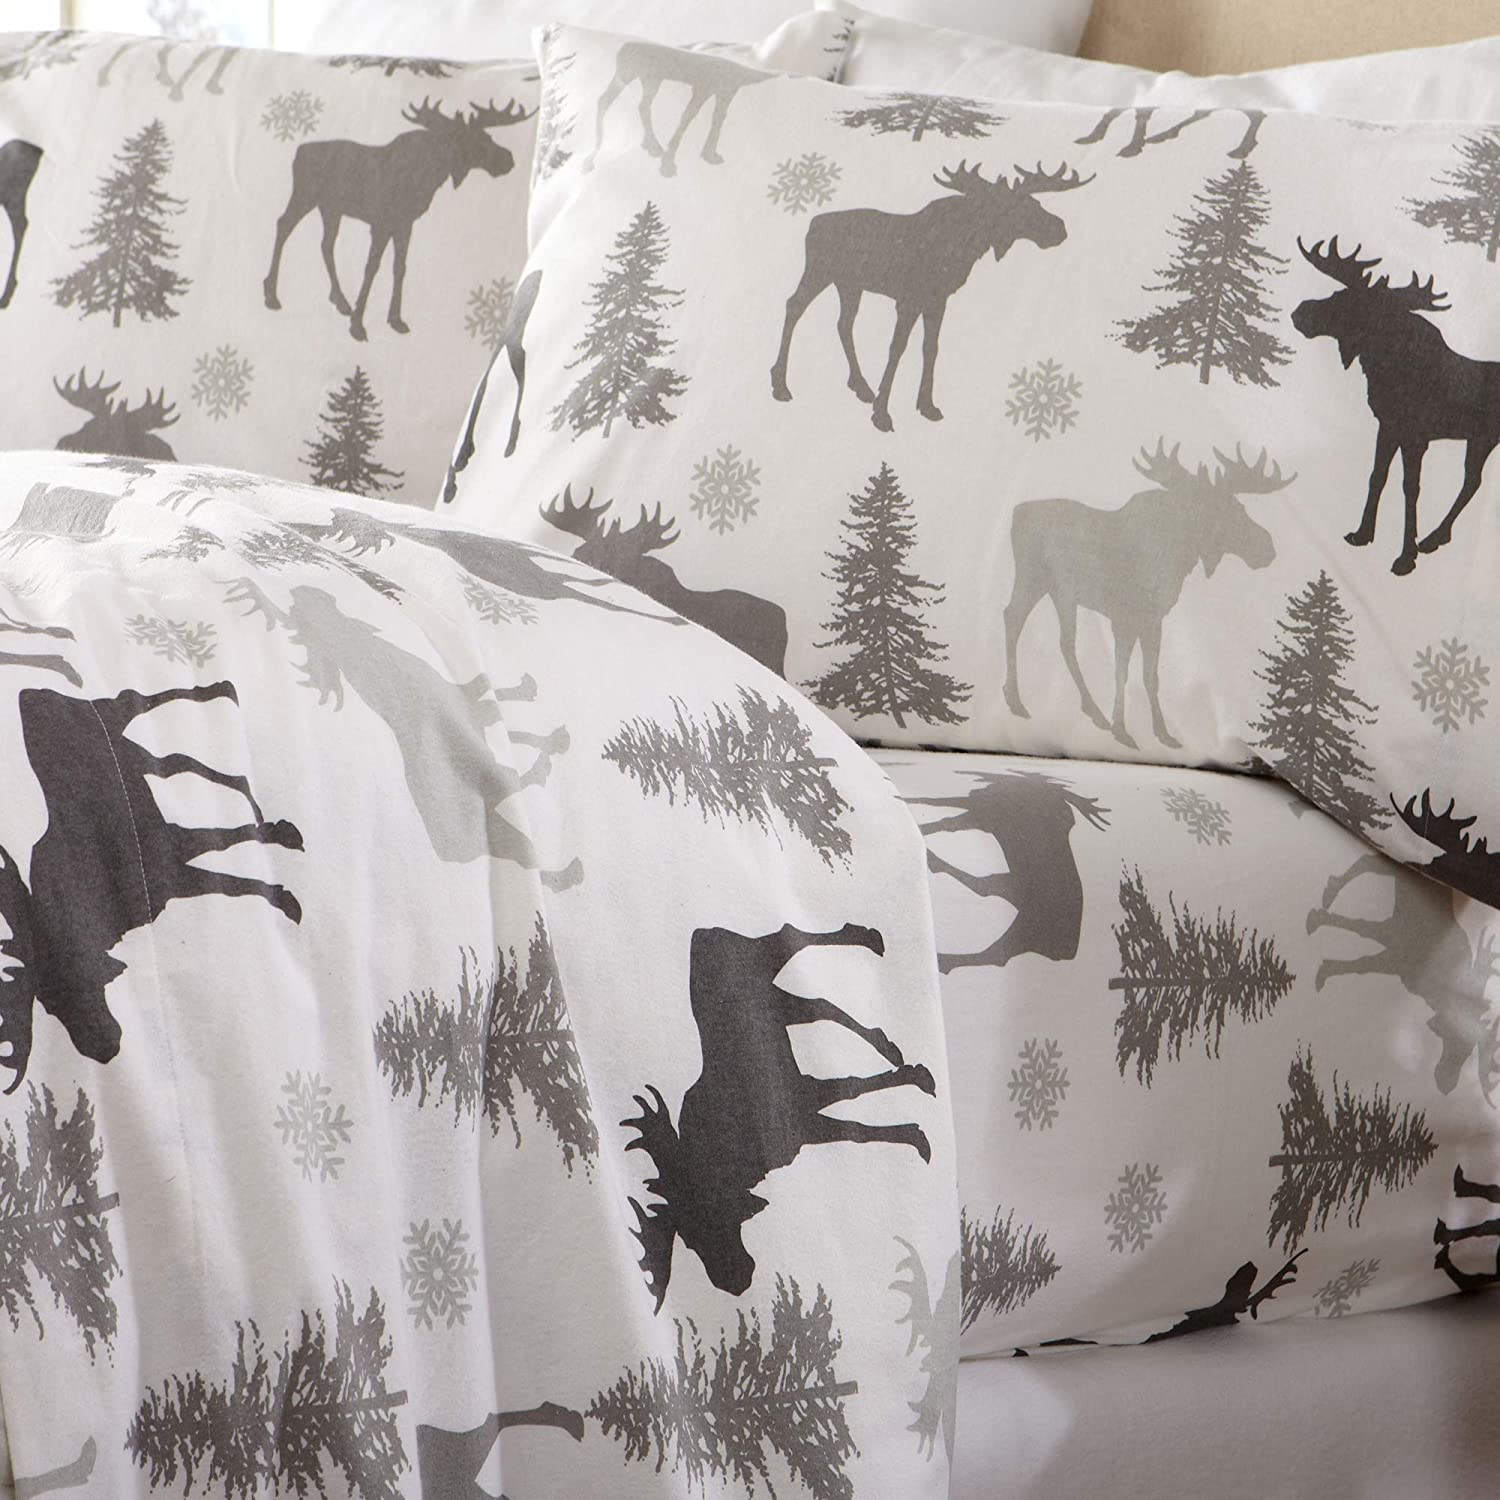 Home Fashion Designs Flannel Sheets Extra Long Twin Winter Bed Sheets Flannel Sheet Set Moose Flannel Sheets 100% Turkish Cotton Flannel Sheet Set. Stratton Collection (Twin XL, Moose Set)